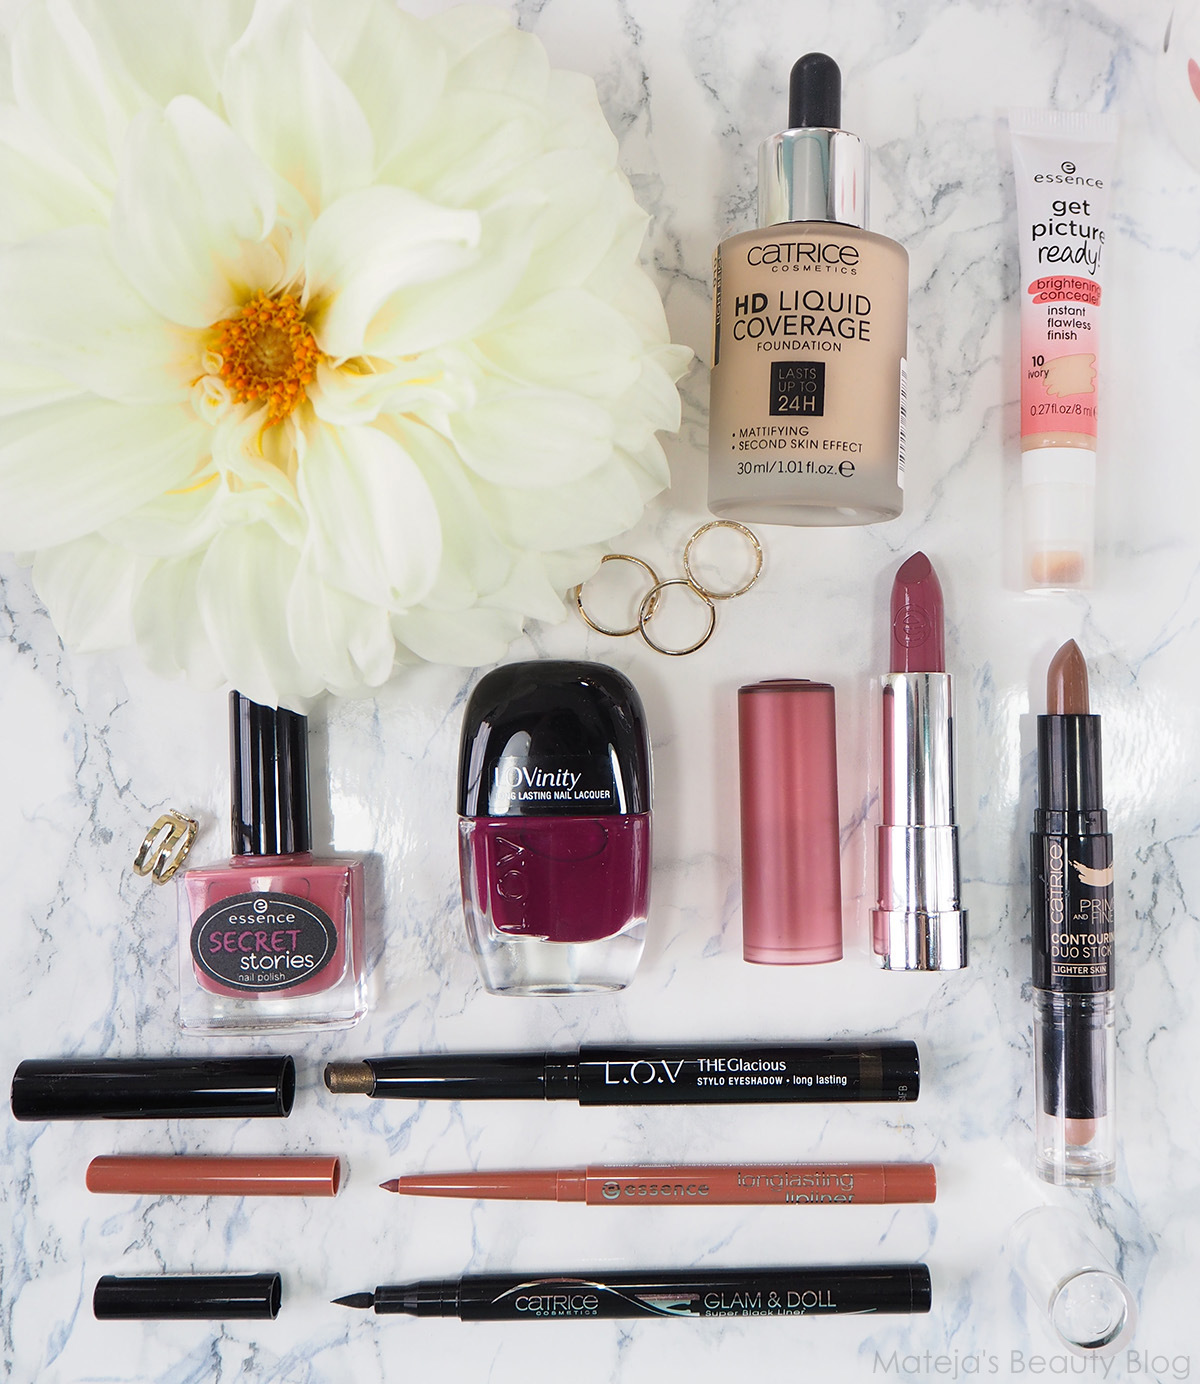 New in #47 and Mateja's Beauty Blogs Turns 6